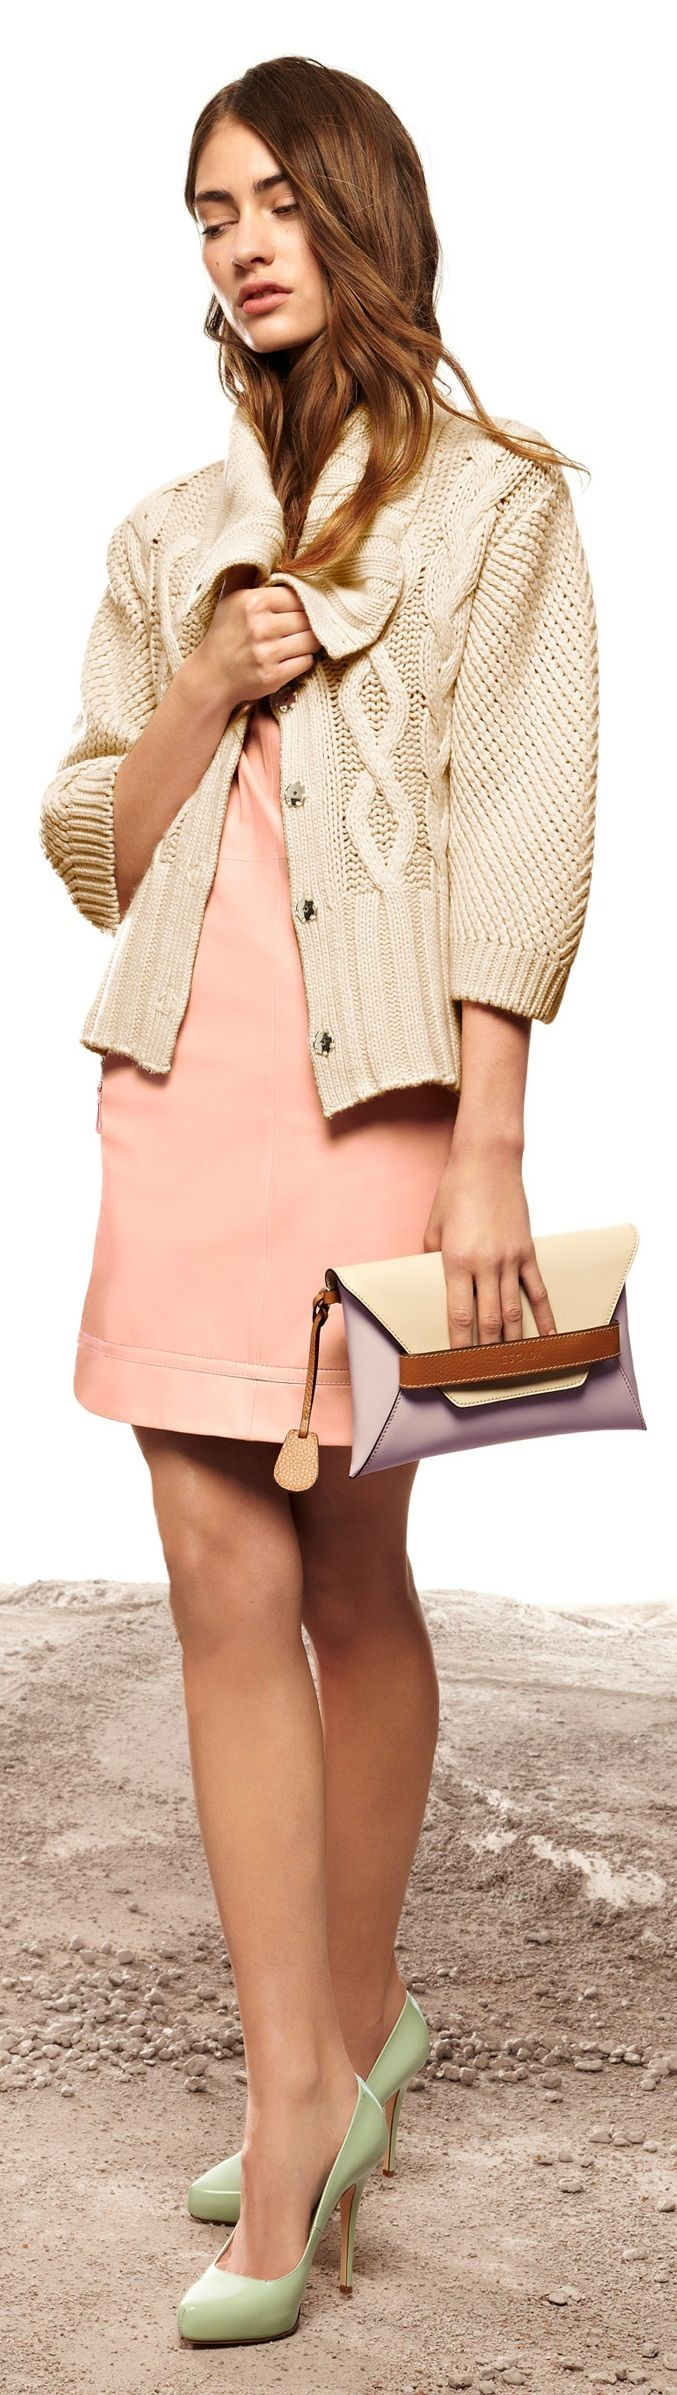 Shoes for pink dress  Escada    Bag Lady  Pinterest  Green shoes Pink dresses